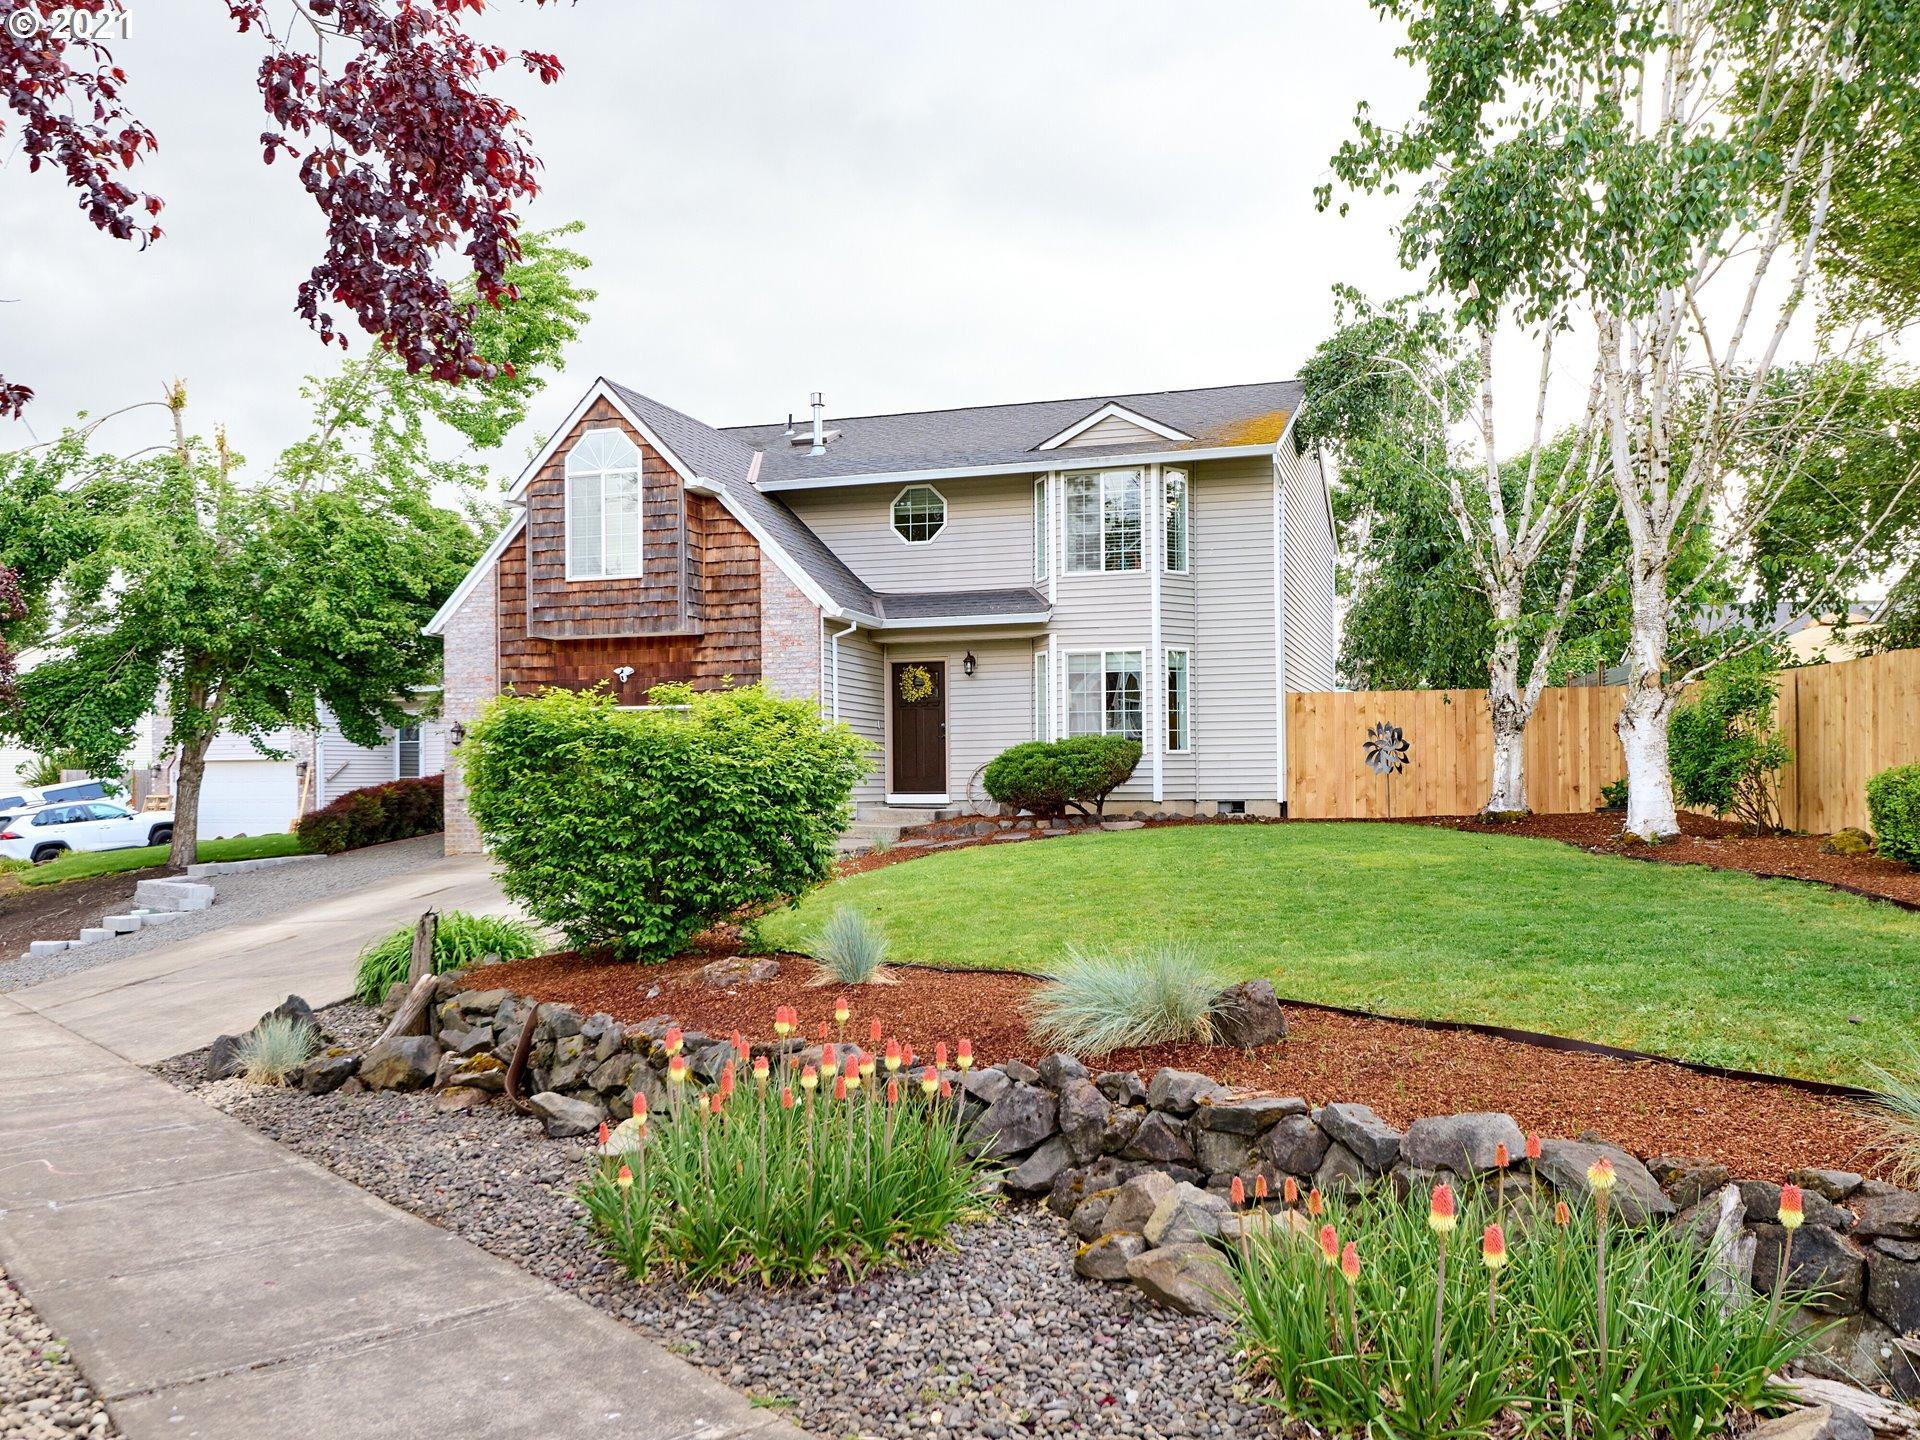 Property Image for 2152 Dorsey Dr